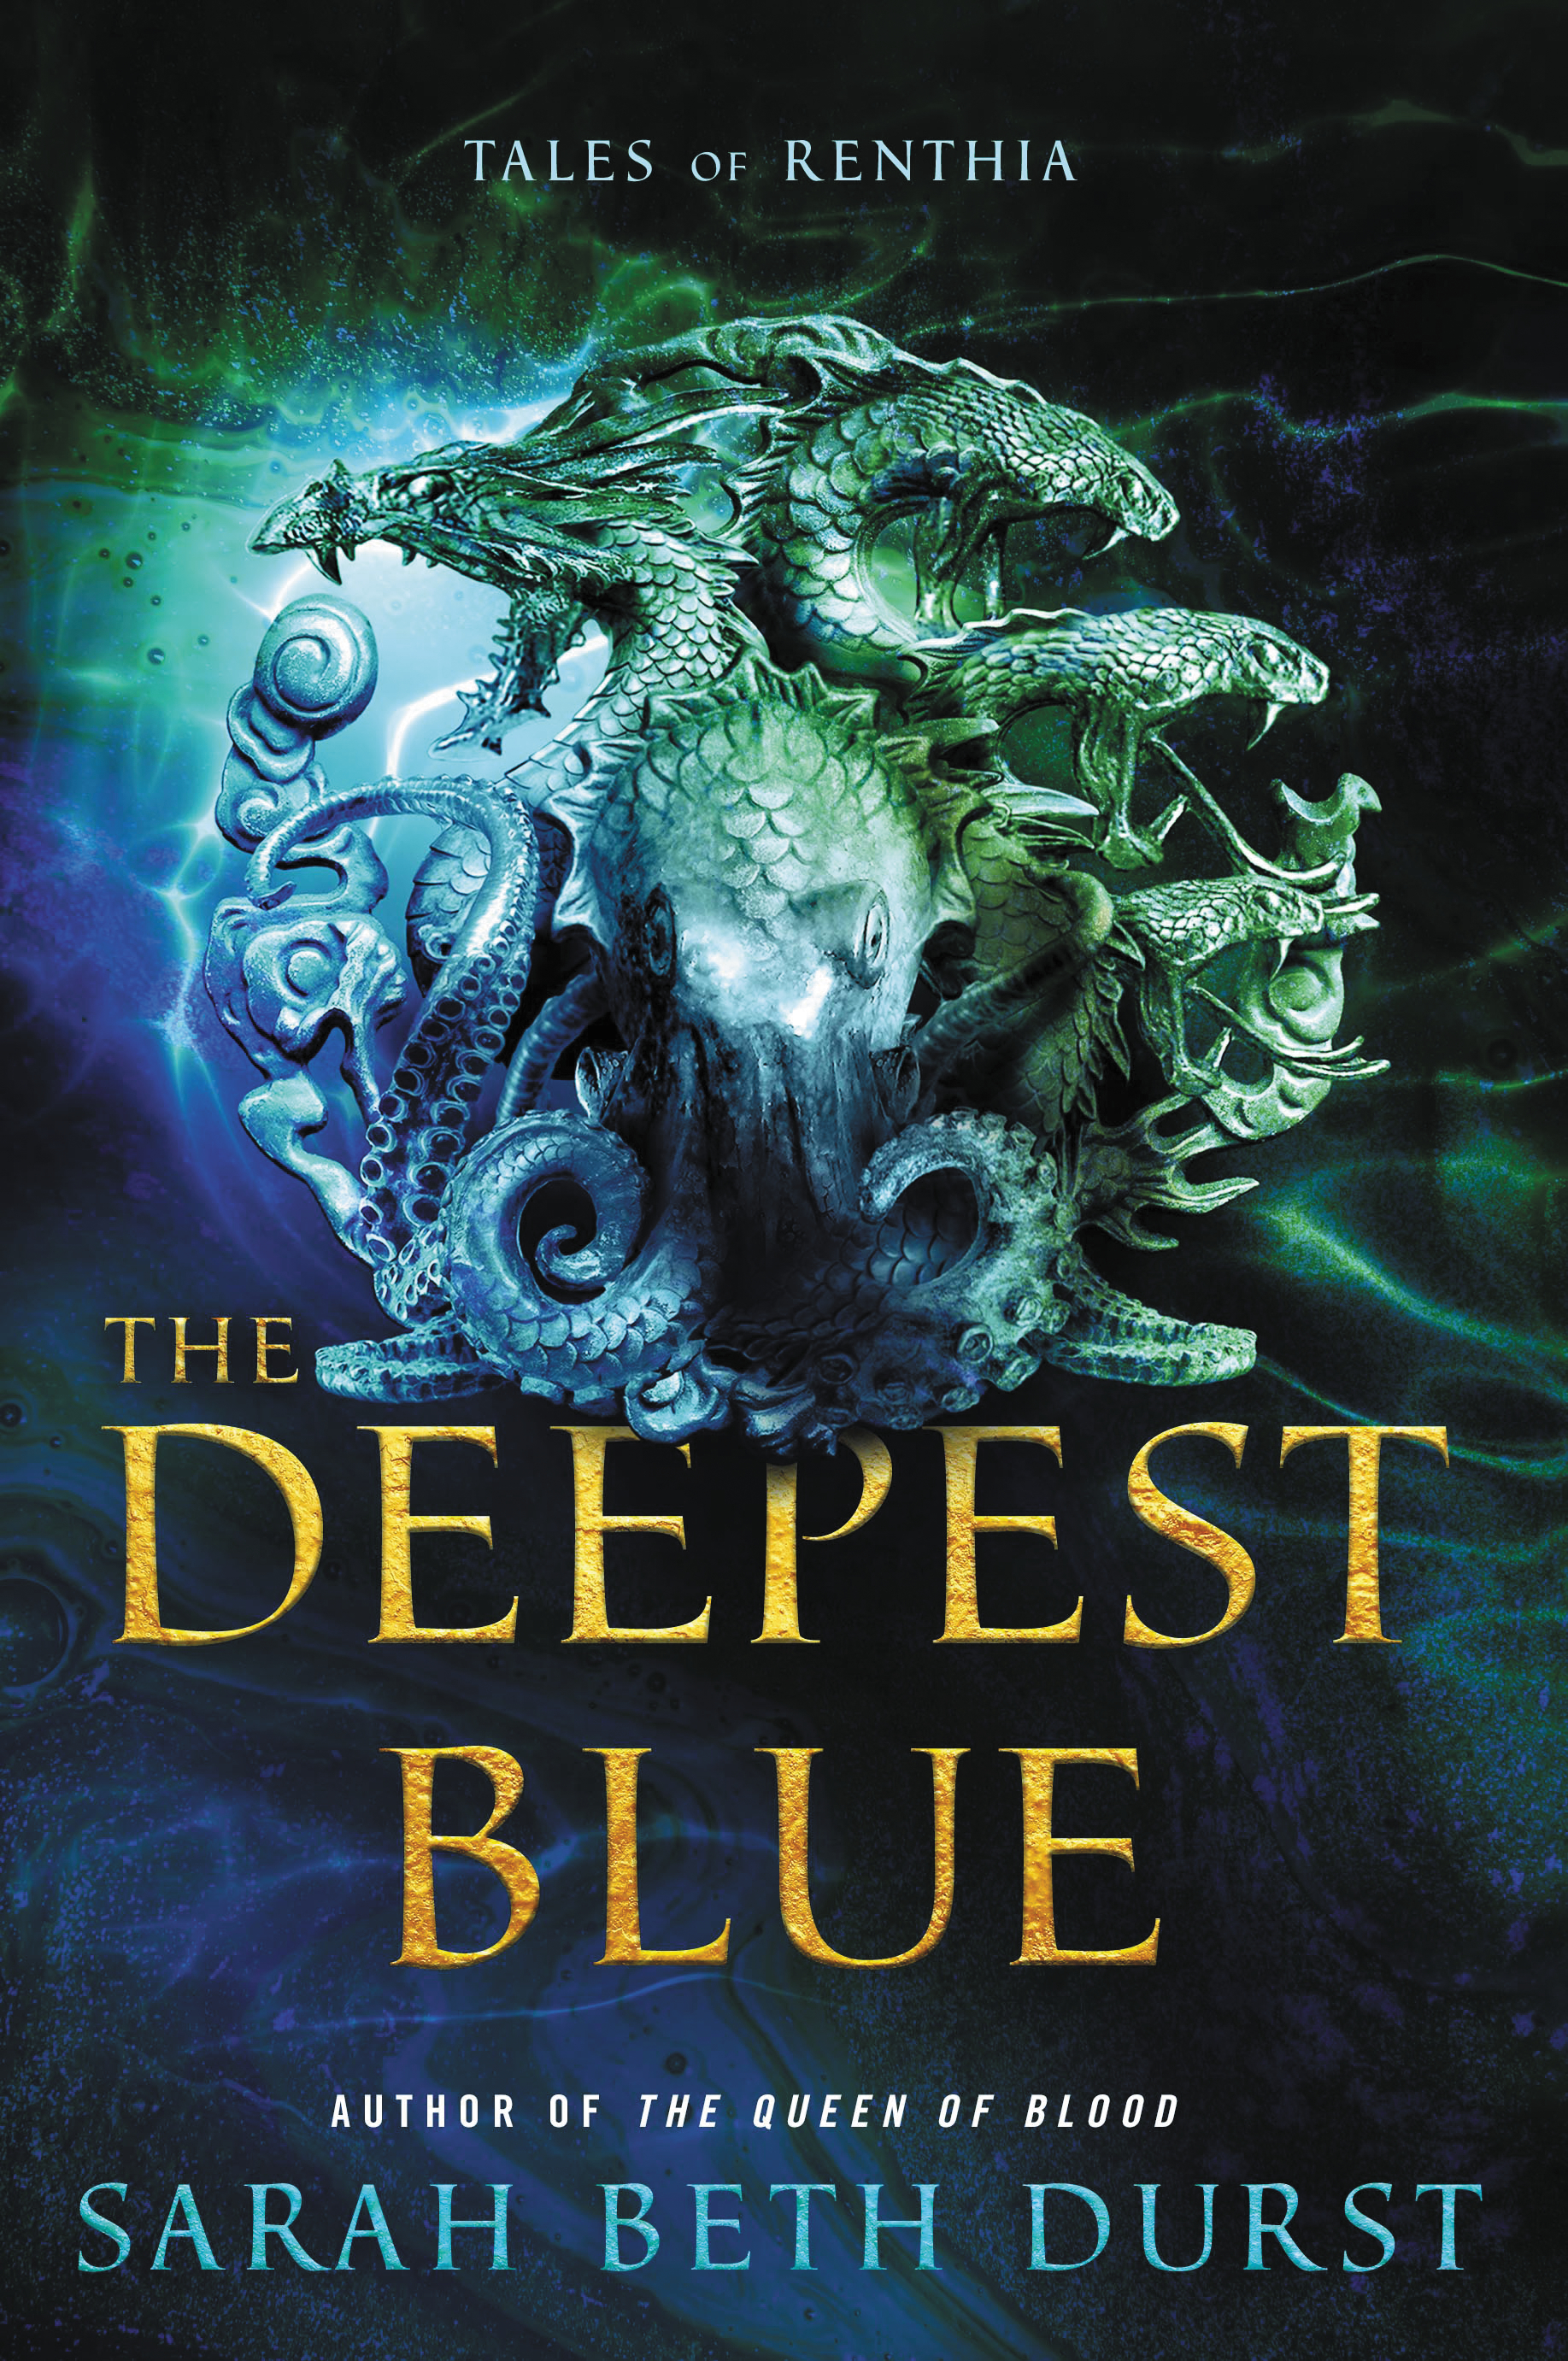 Sarah Beth Durst on the cover for The Deepest Blue